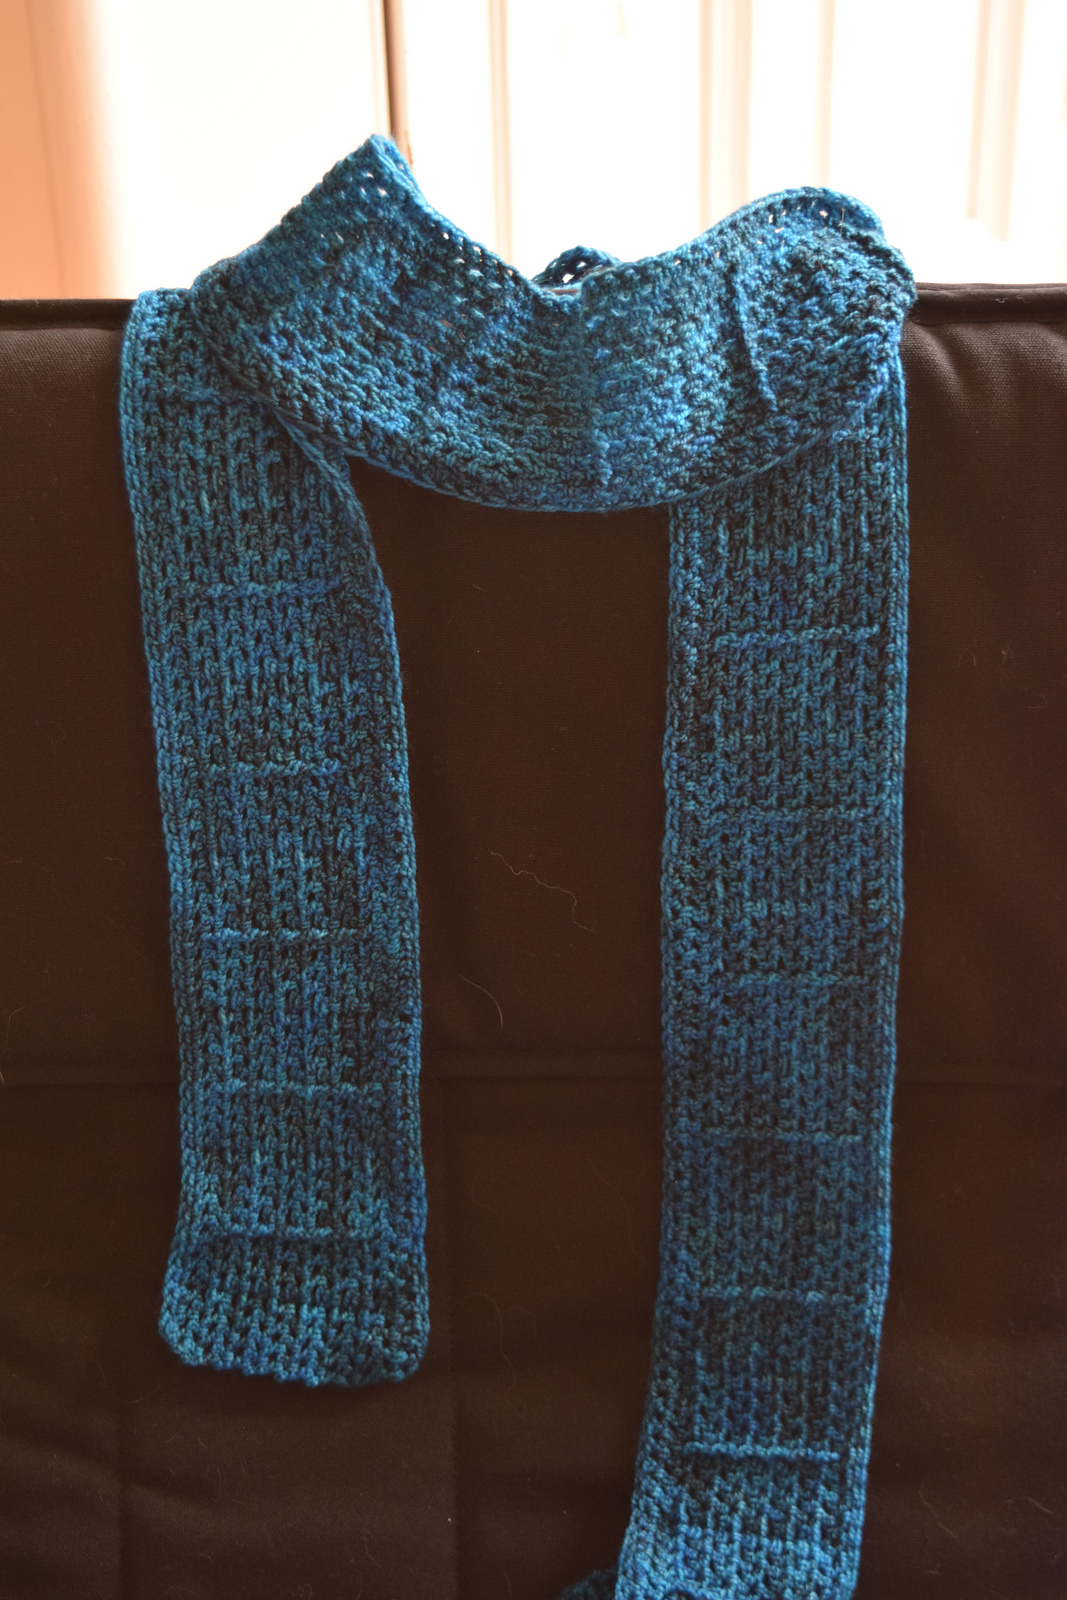 turquoise rectangular ribbed scarf draped over a chair